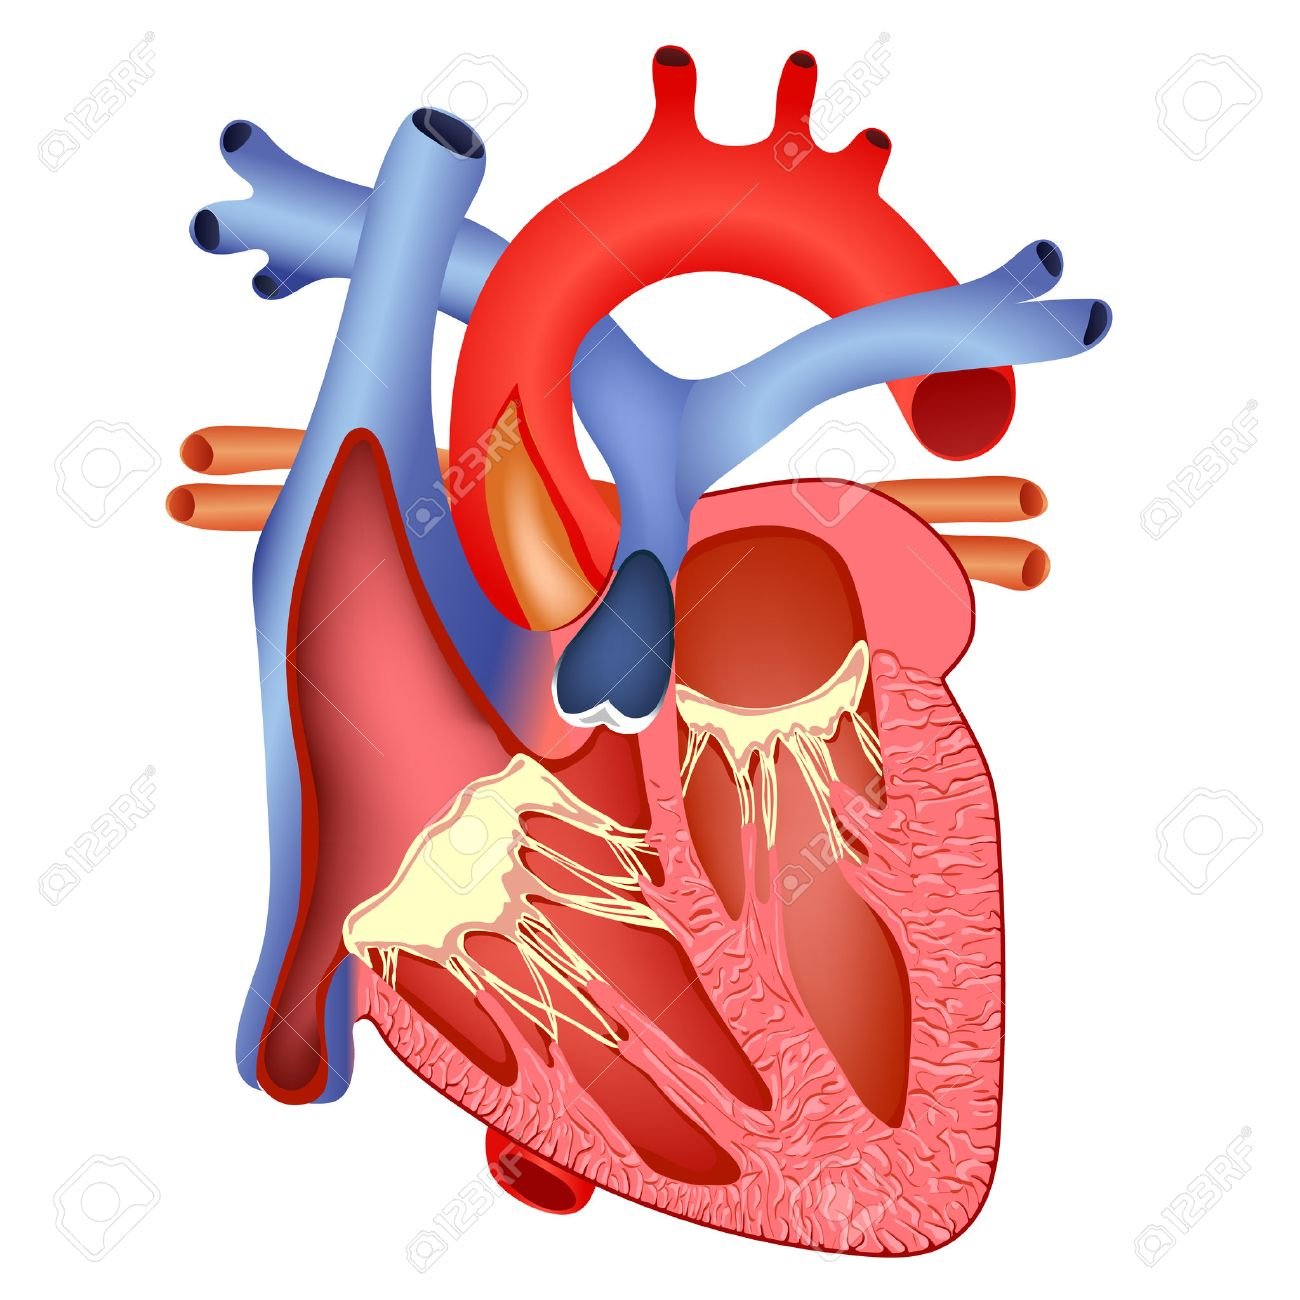 medical structure of the heart - 47868556